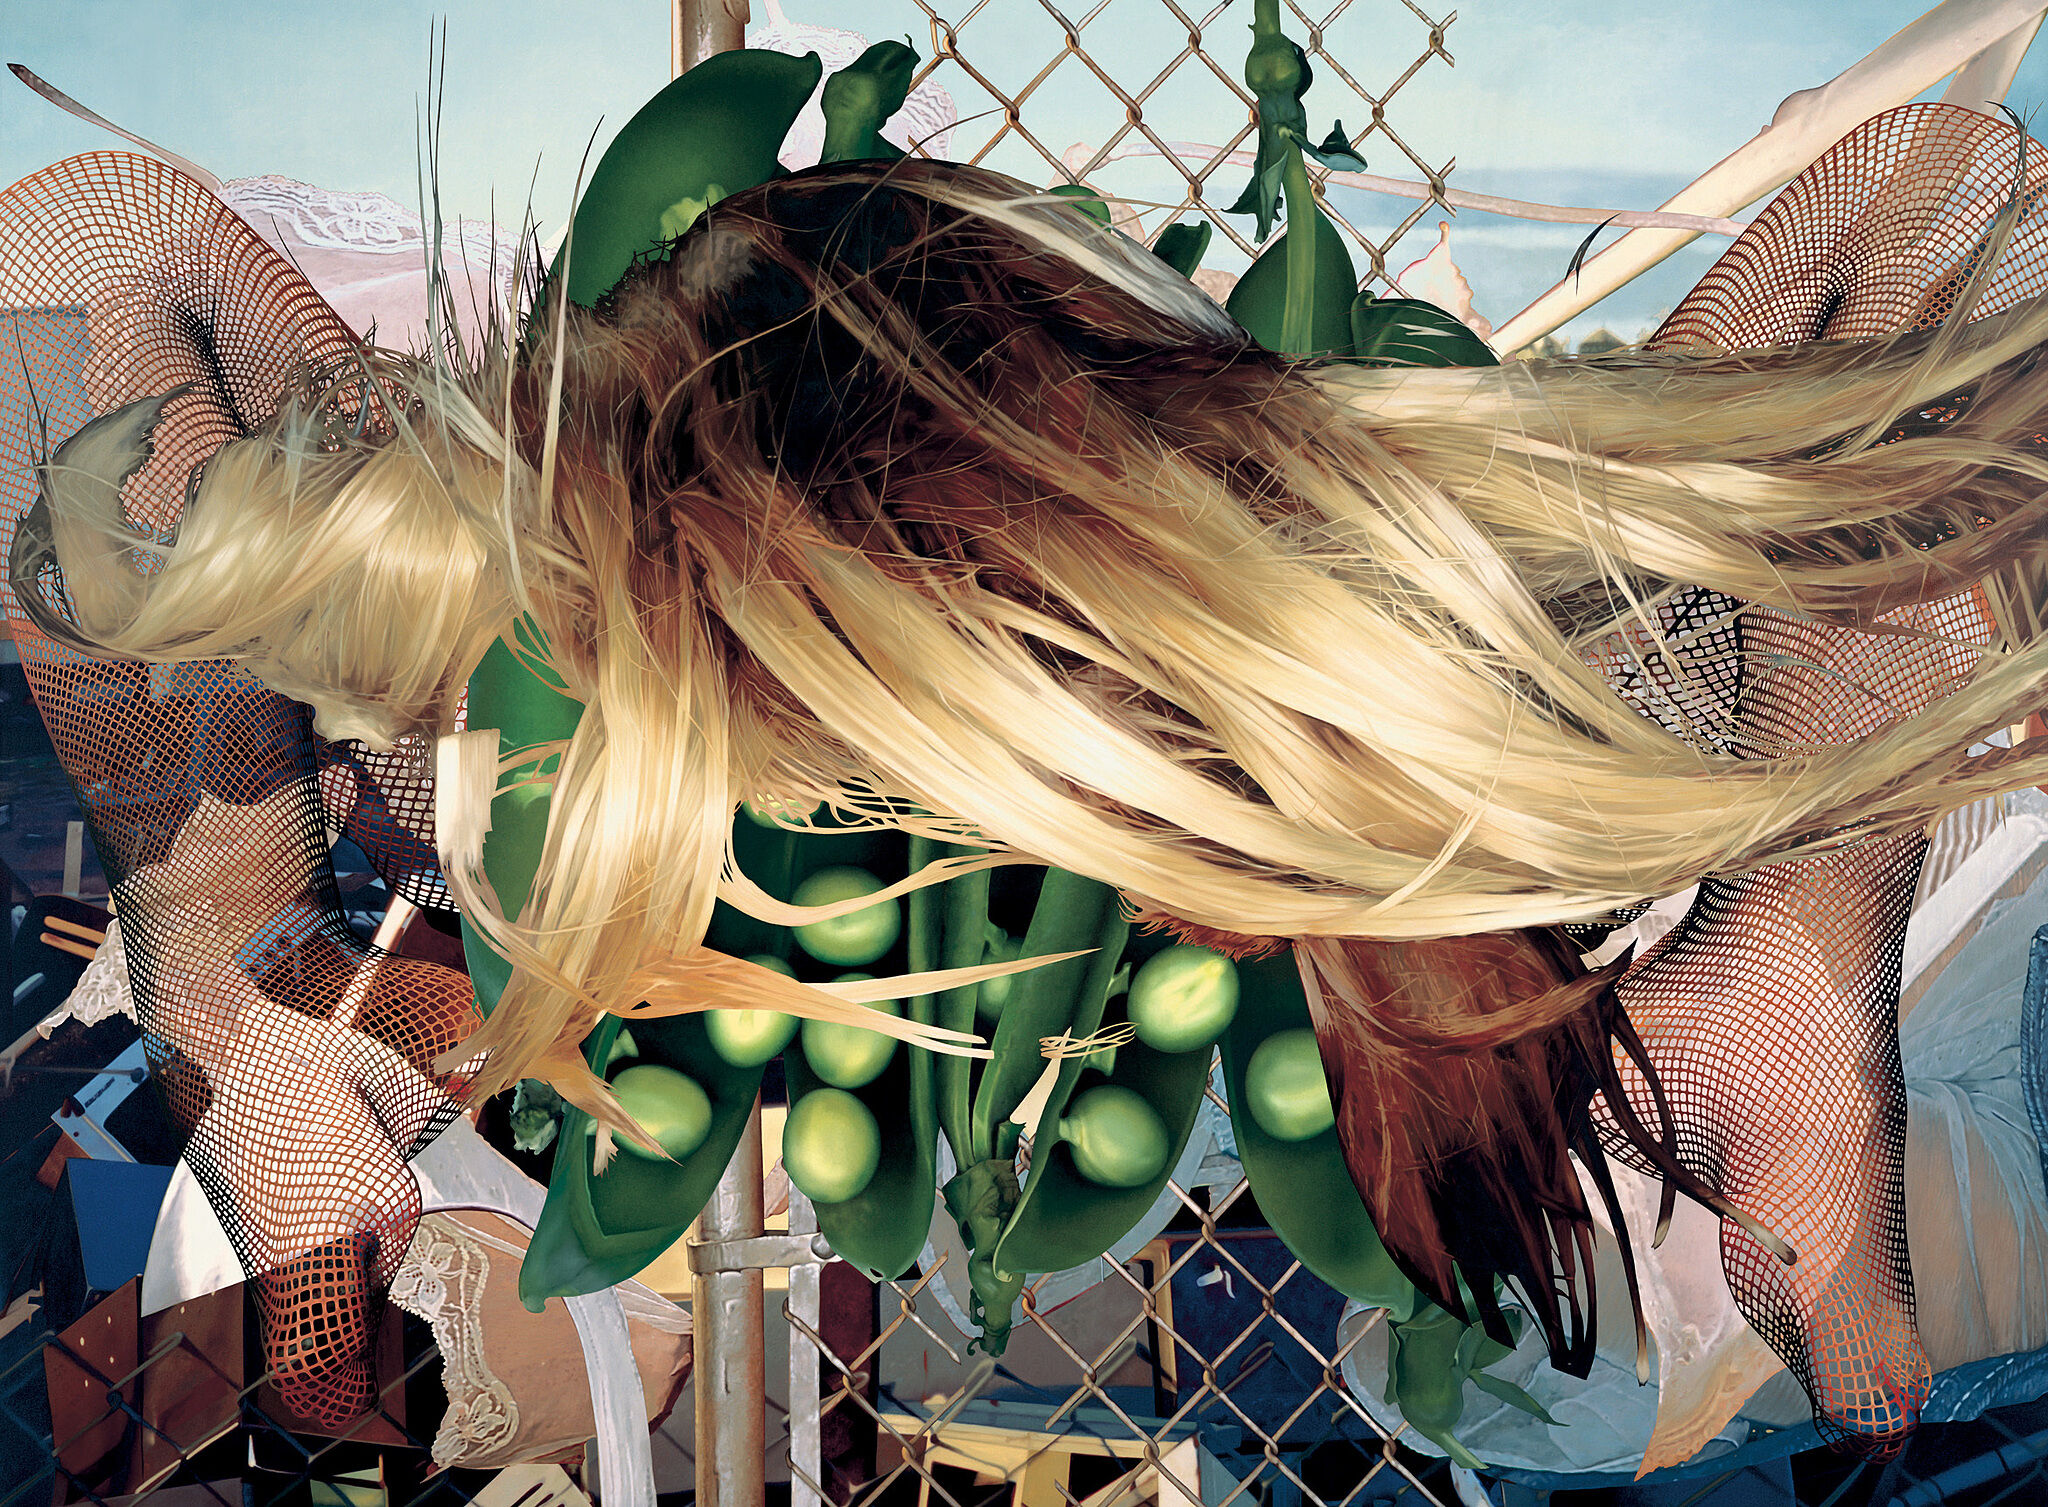 A painting of spread legs, peas in a pod, and long hair collaged over a junkyard.